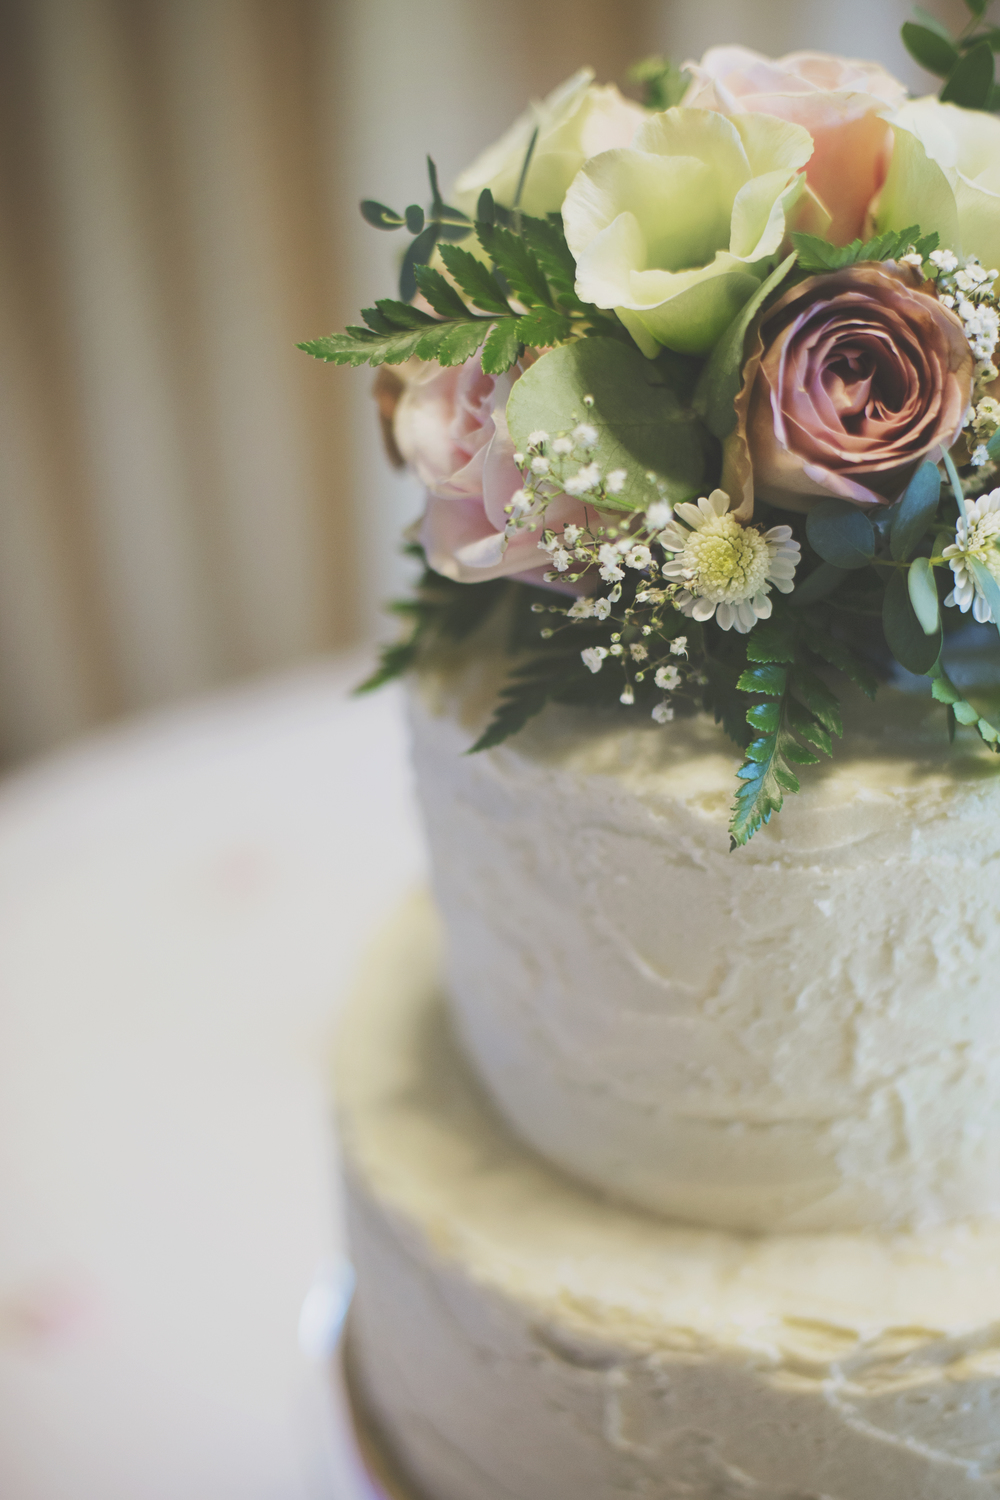 Three Flowers Photography Barn Brasserie Essex Wedding Rustic Cake